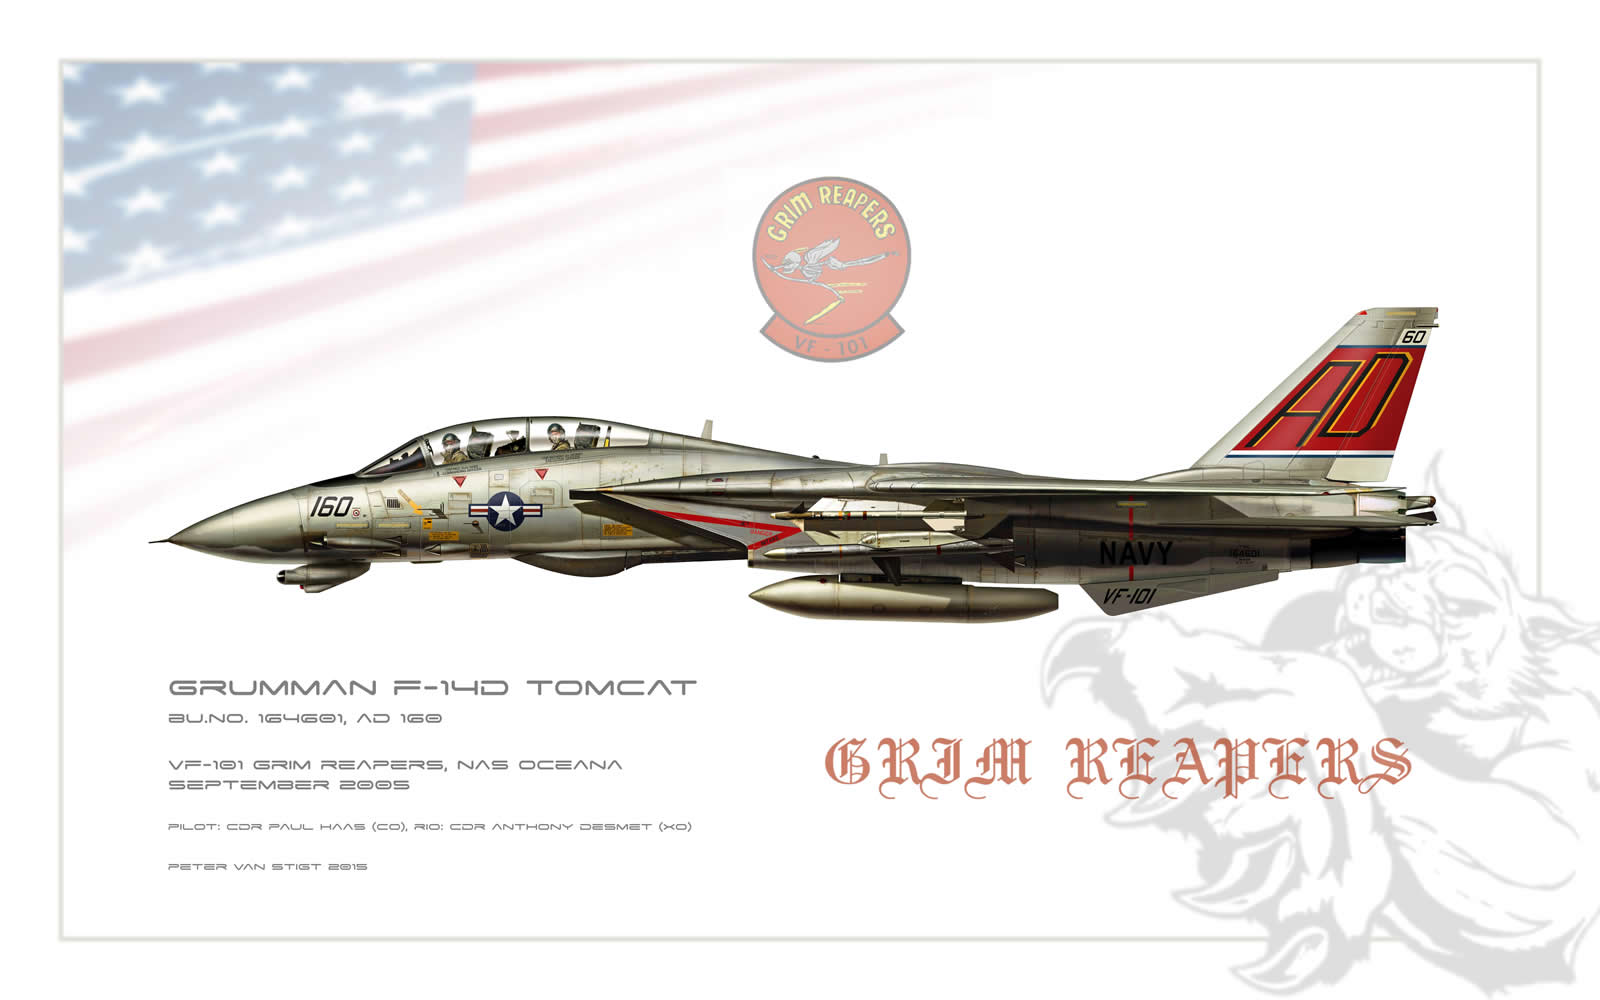 VF-101 Grim Reapers F-14 Tomcat Profile